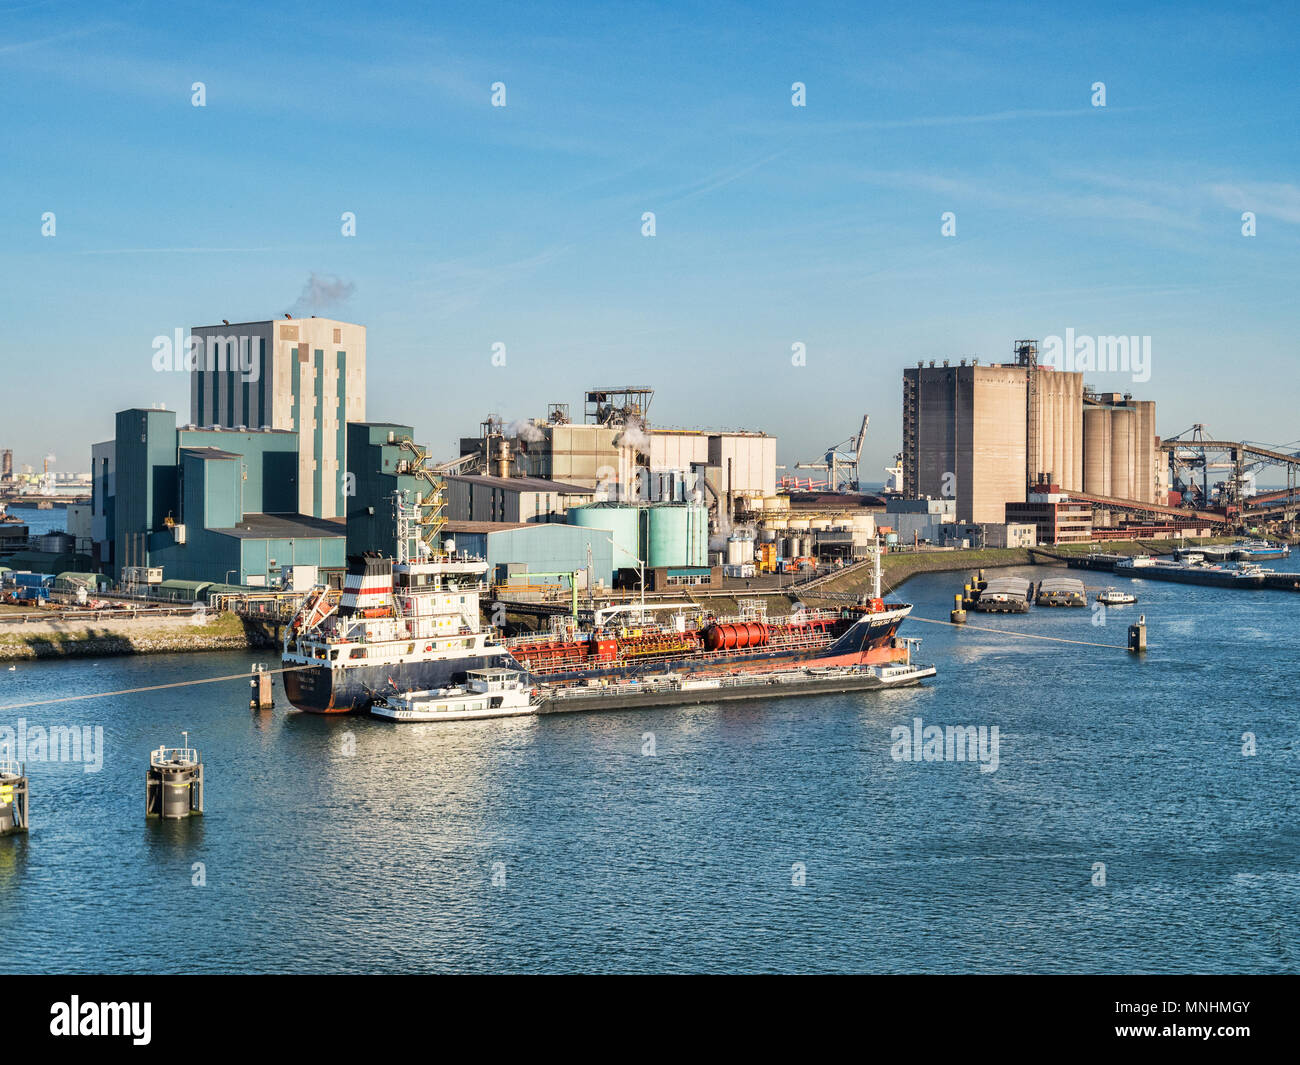 6 April 2018: Rotterdam, Netherlands - Chemical or Oil Tanker Besiktas Pera at Port of Rotterdam on a bright spring morning with clear blue sky. - Stock Image